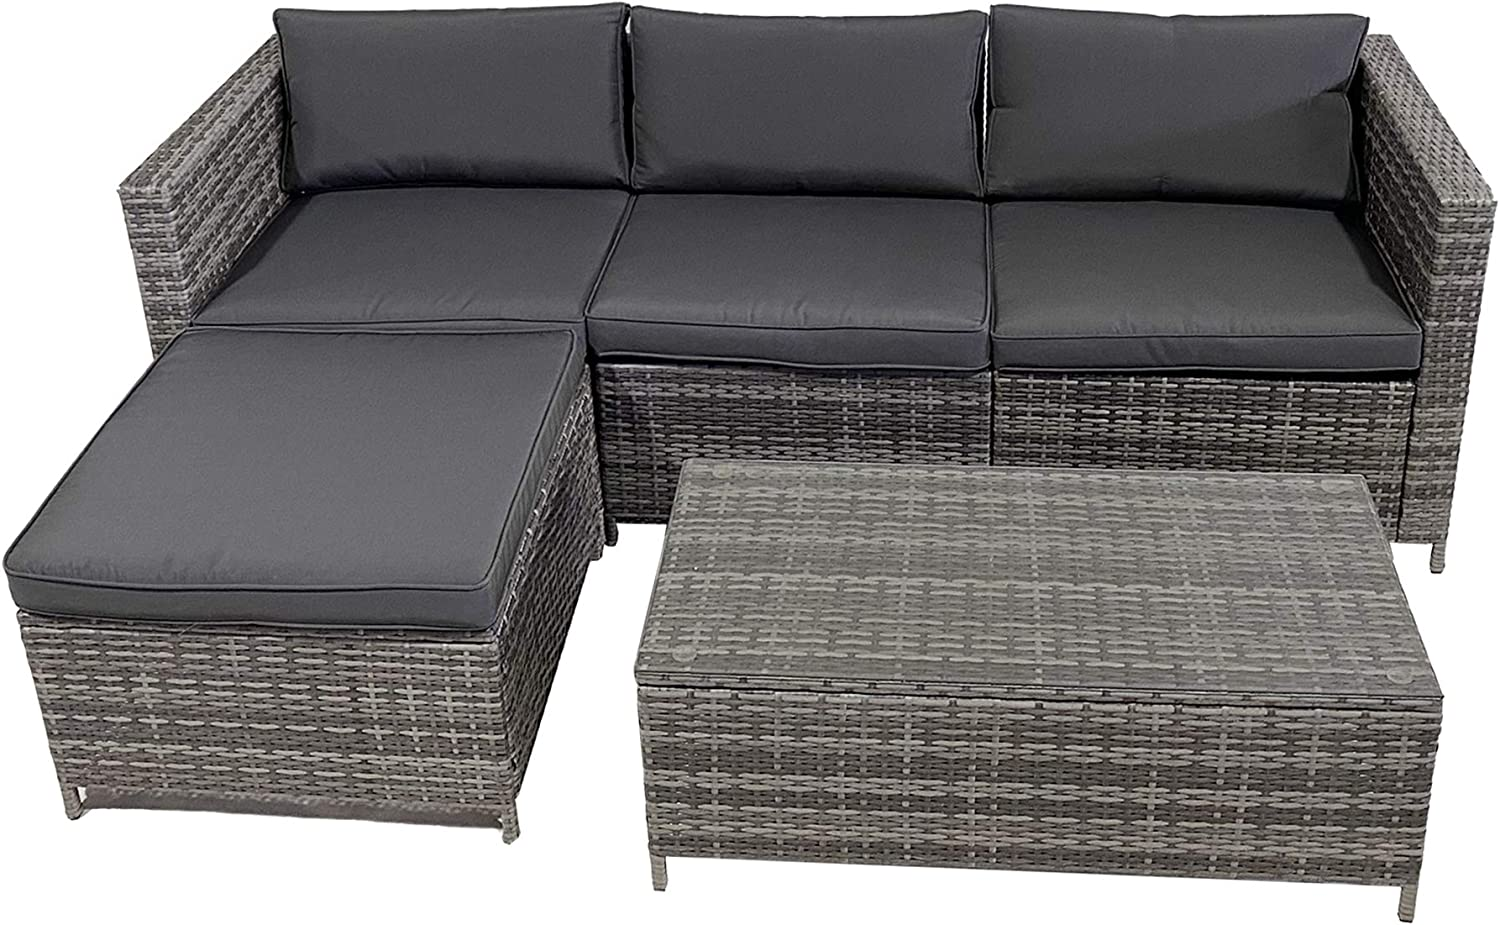 SUNVIVI OUTDOOR Patio Furniture, 5 Piece All Weather Grey PE Wicker Patio Sectional Furniture Conversation Sofa Set with Coffee Table, Removable Cushions (Grey-Grey)